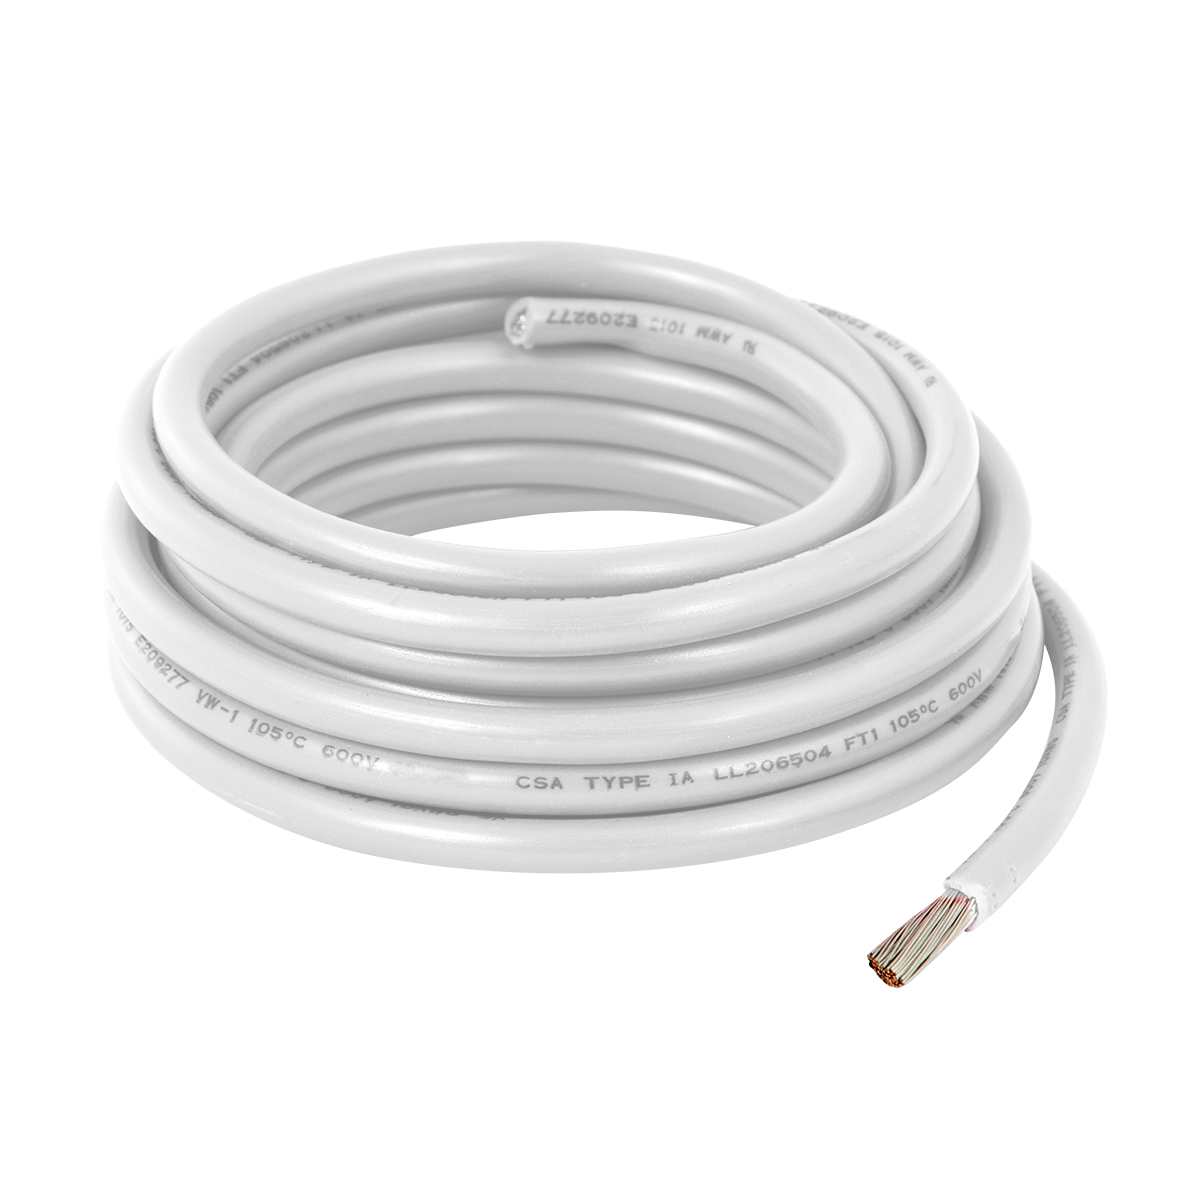 55005 White UL Listed Primary Wires in 14 Gauge